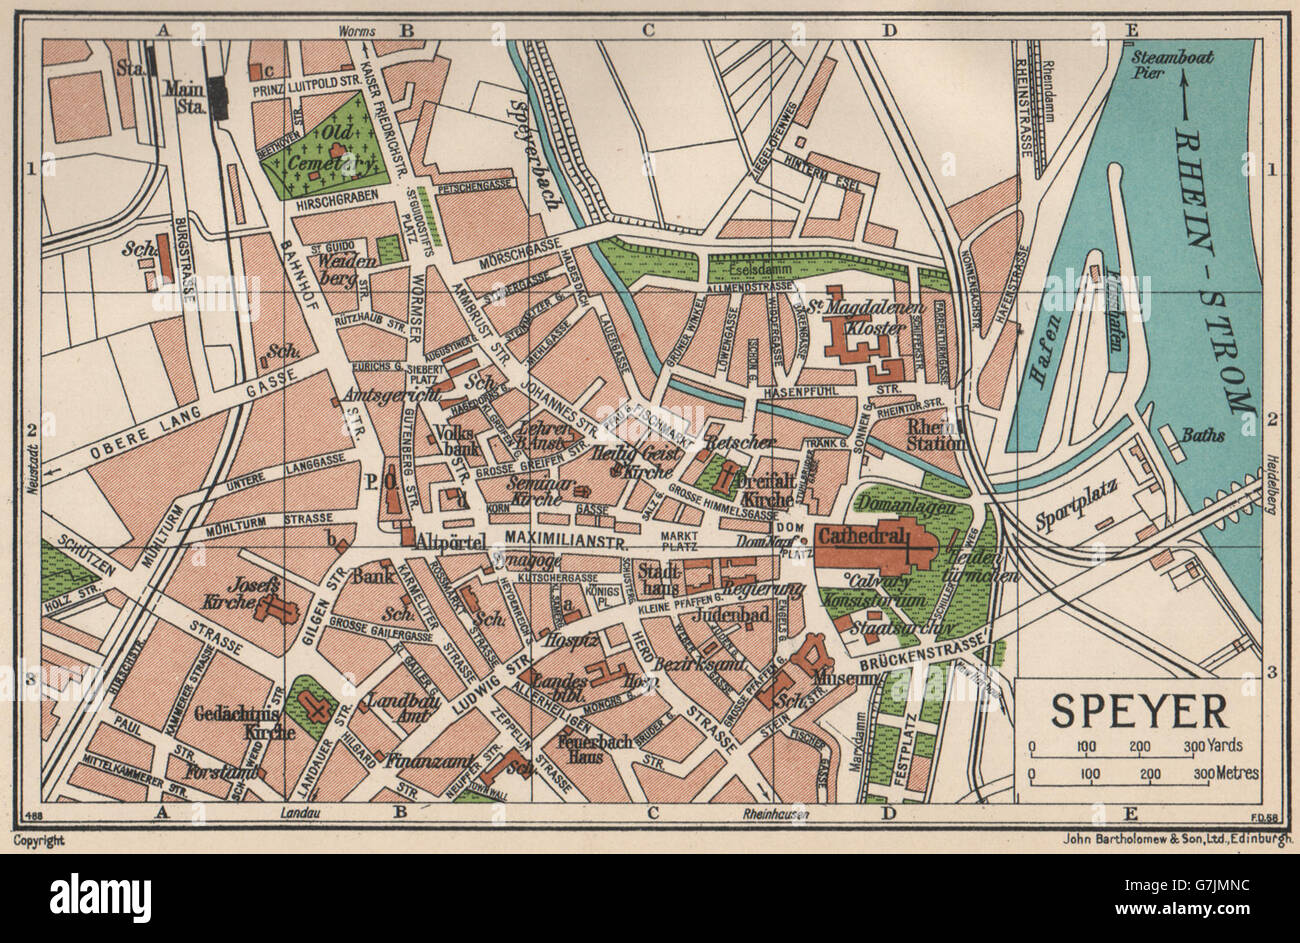 SPEYER. Vintage town city map plan. Germany, 1933 Stock Photo